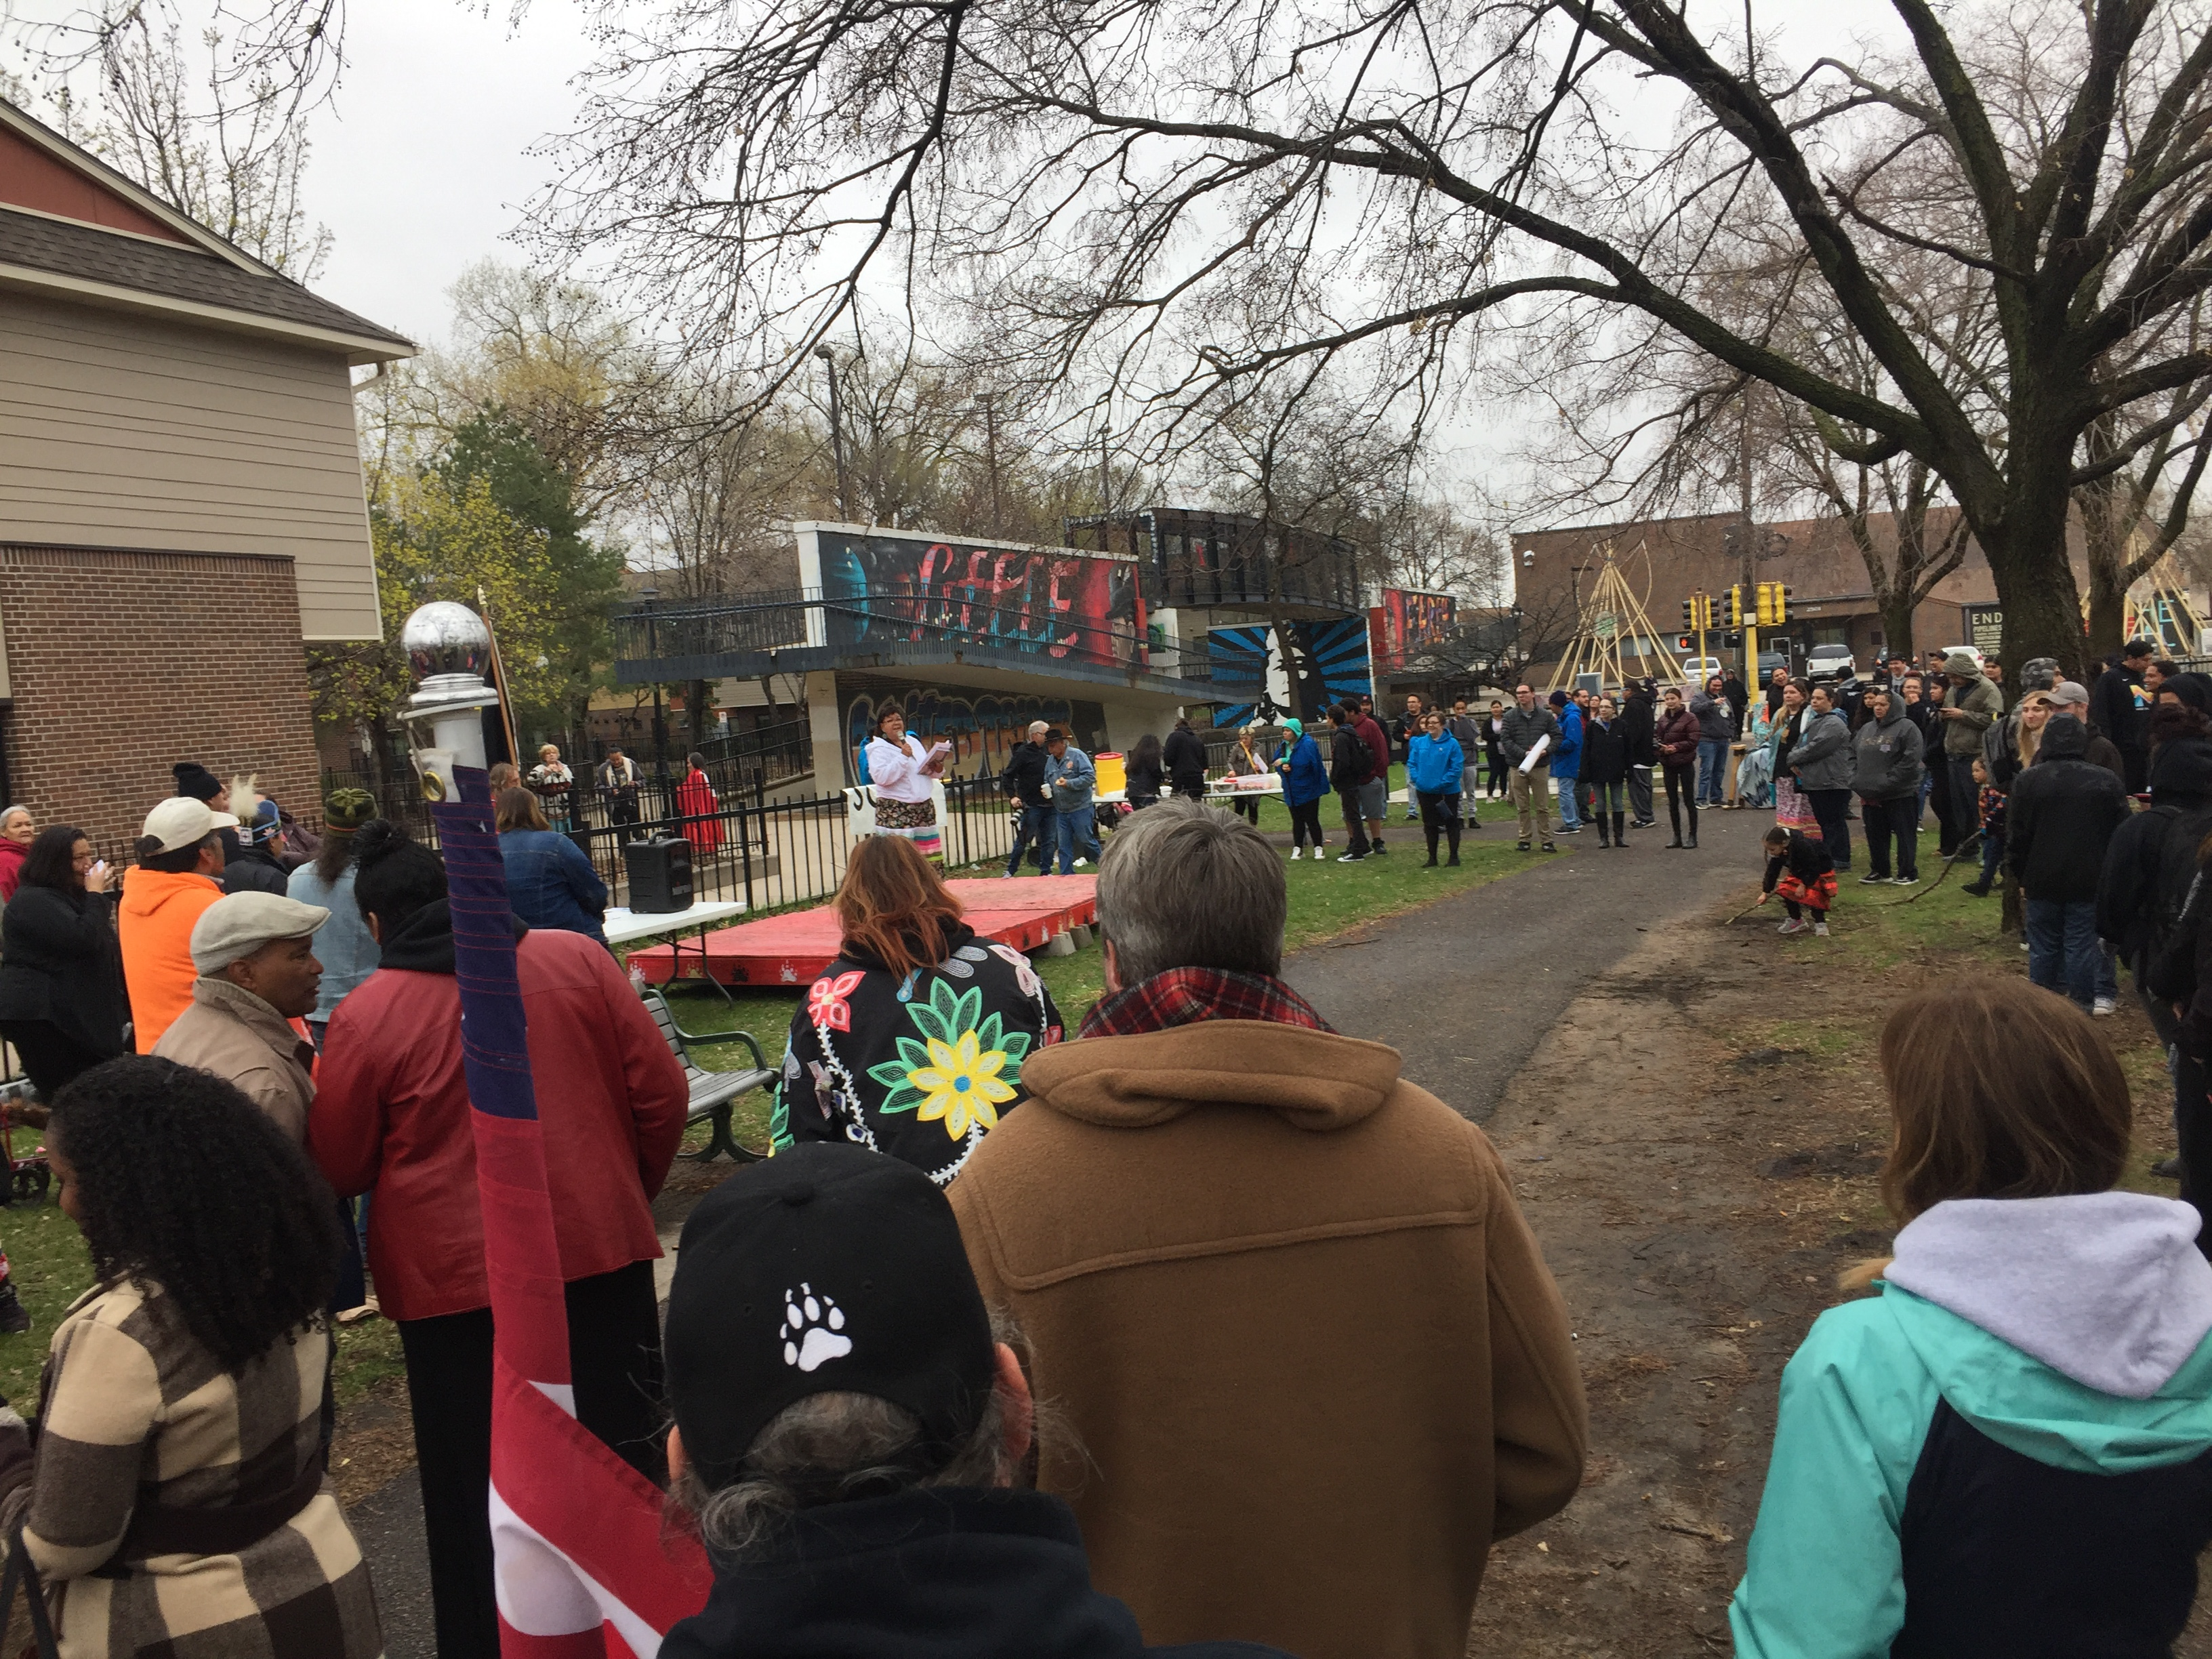 Caption: The crowd listens as the American Indian Month kick off event begins., Credit: Melissa Townsend